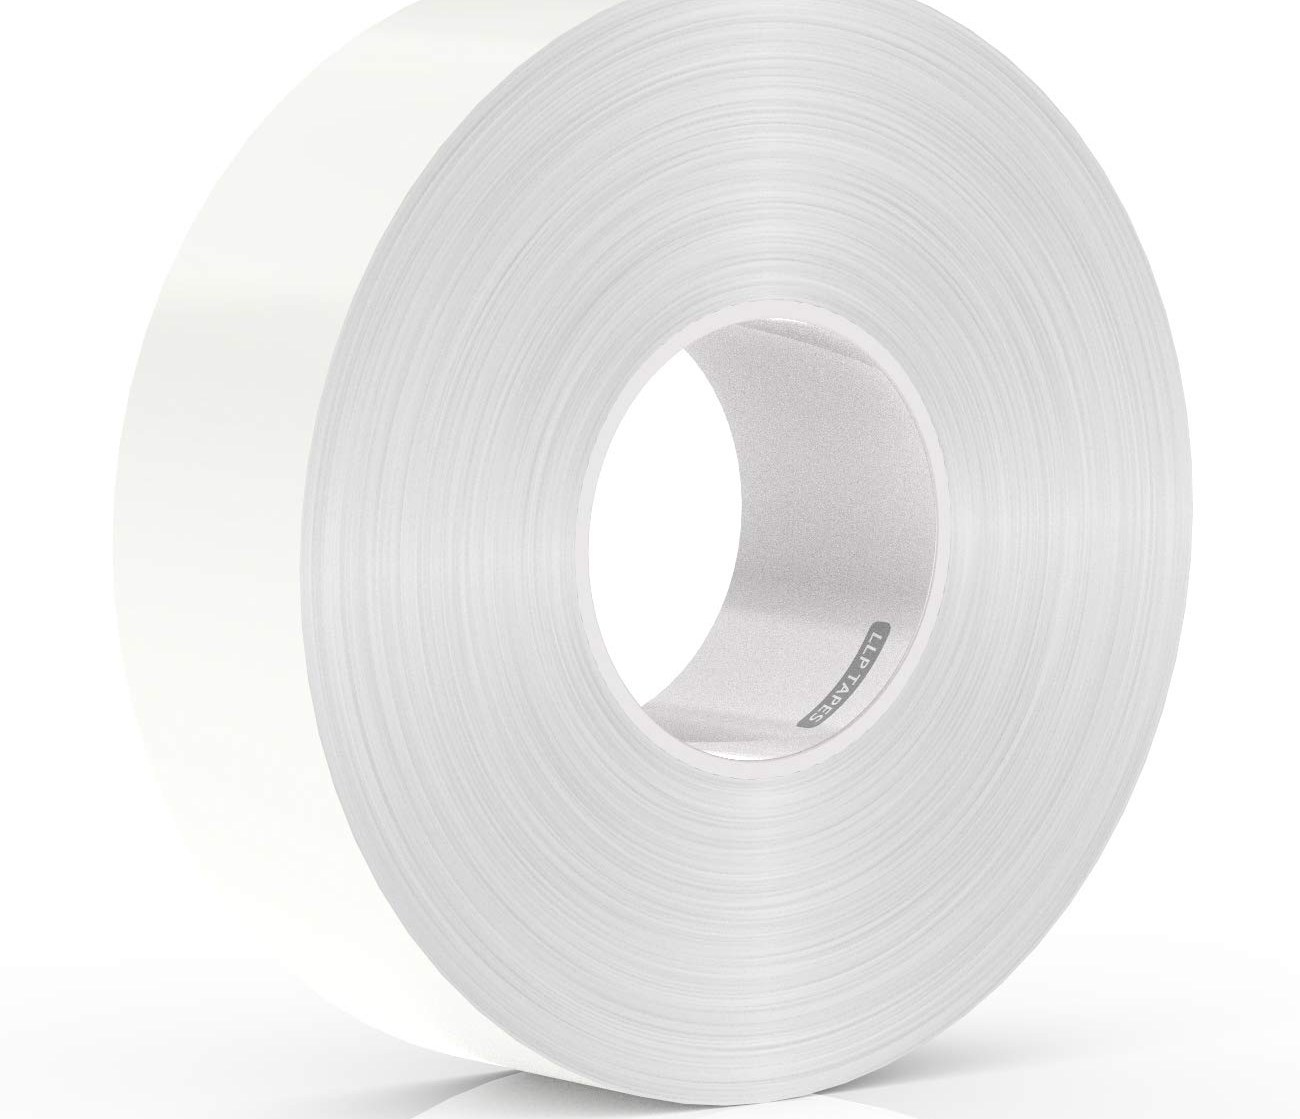 Llpt Double Sided White Carpet Tape 2 36 Inches X 20 Yards Residue | Heavy Duty Stair Carpet | Stair Runners | Stair Treads Carpet | Stair Risers | Rug Gripper | Carpet Protector